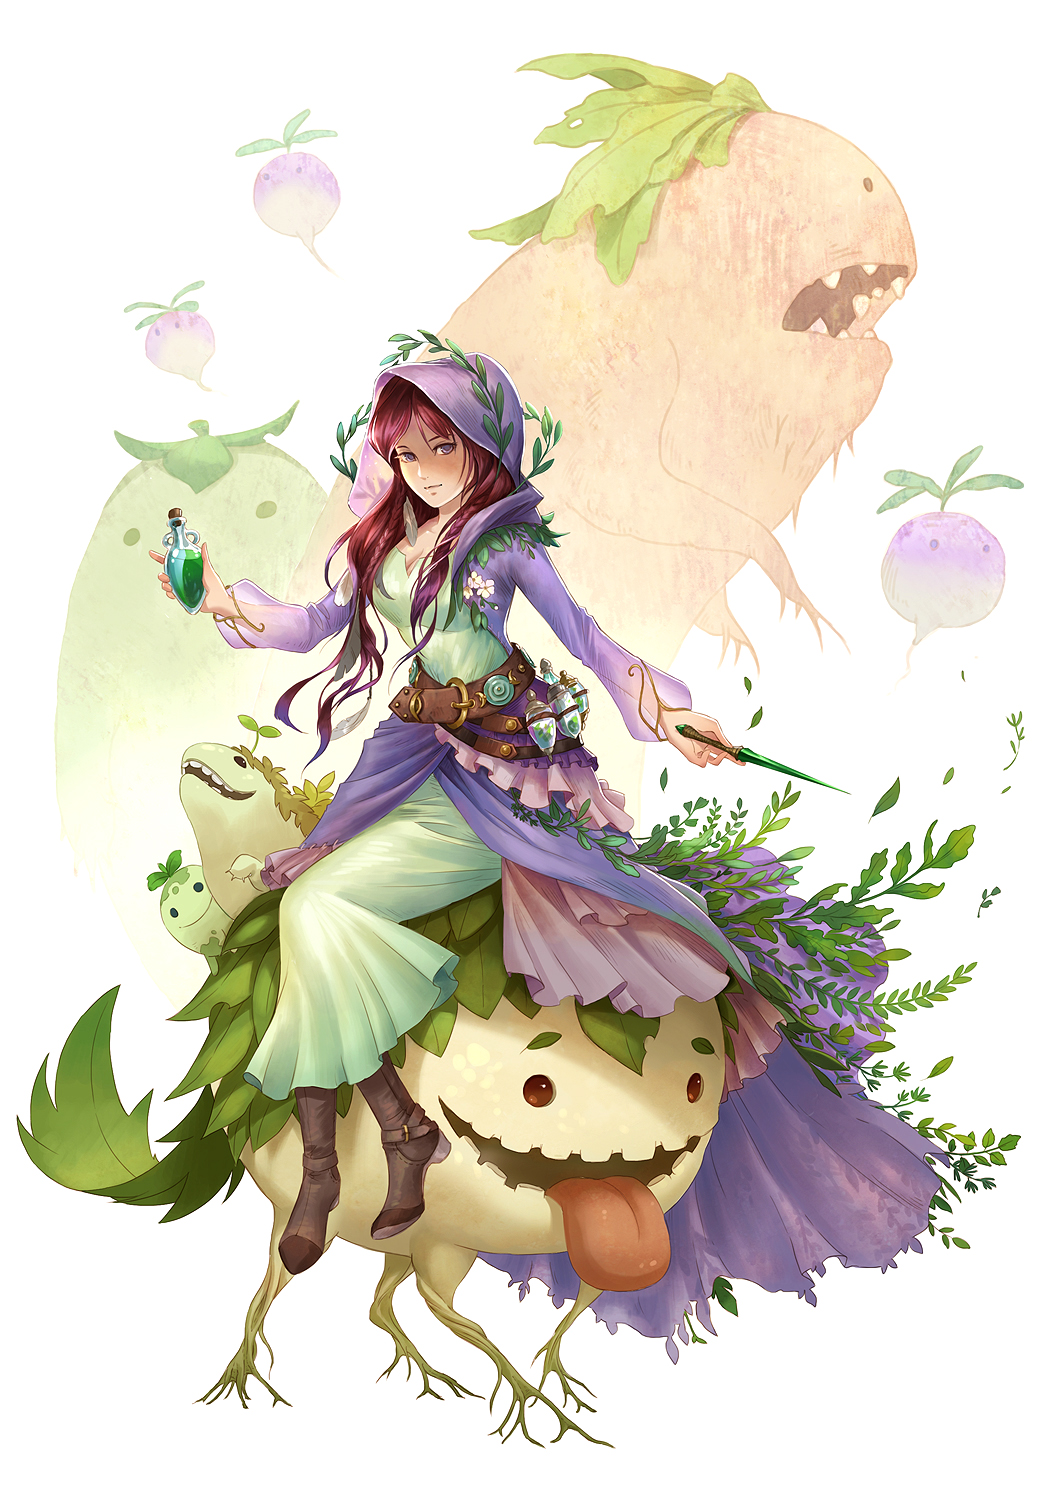 Hedge Witch By Sandara On Deviantart Male hedge witches are called hedge witches, not warlocks as some people mistakenly believe. hedge witch by sandara on deviantart